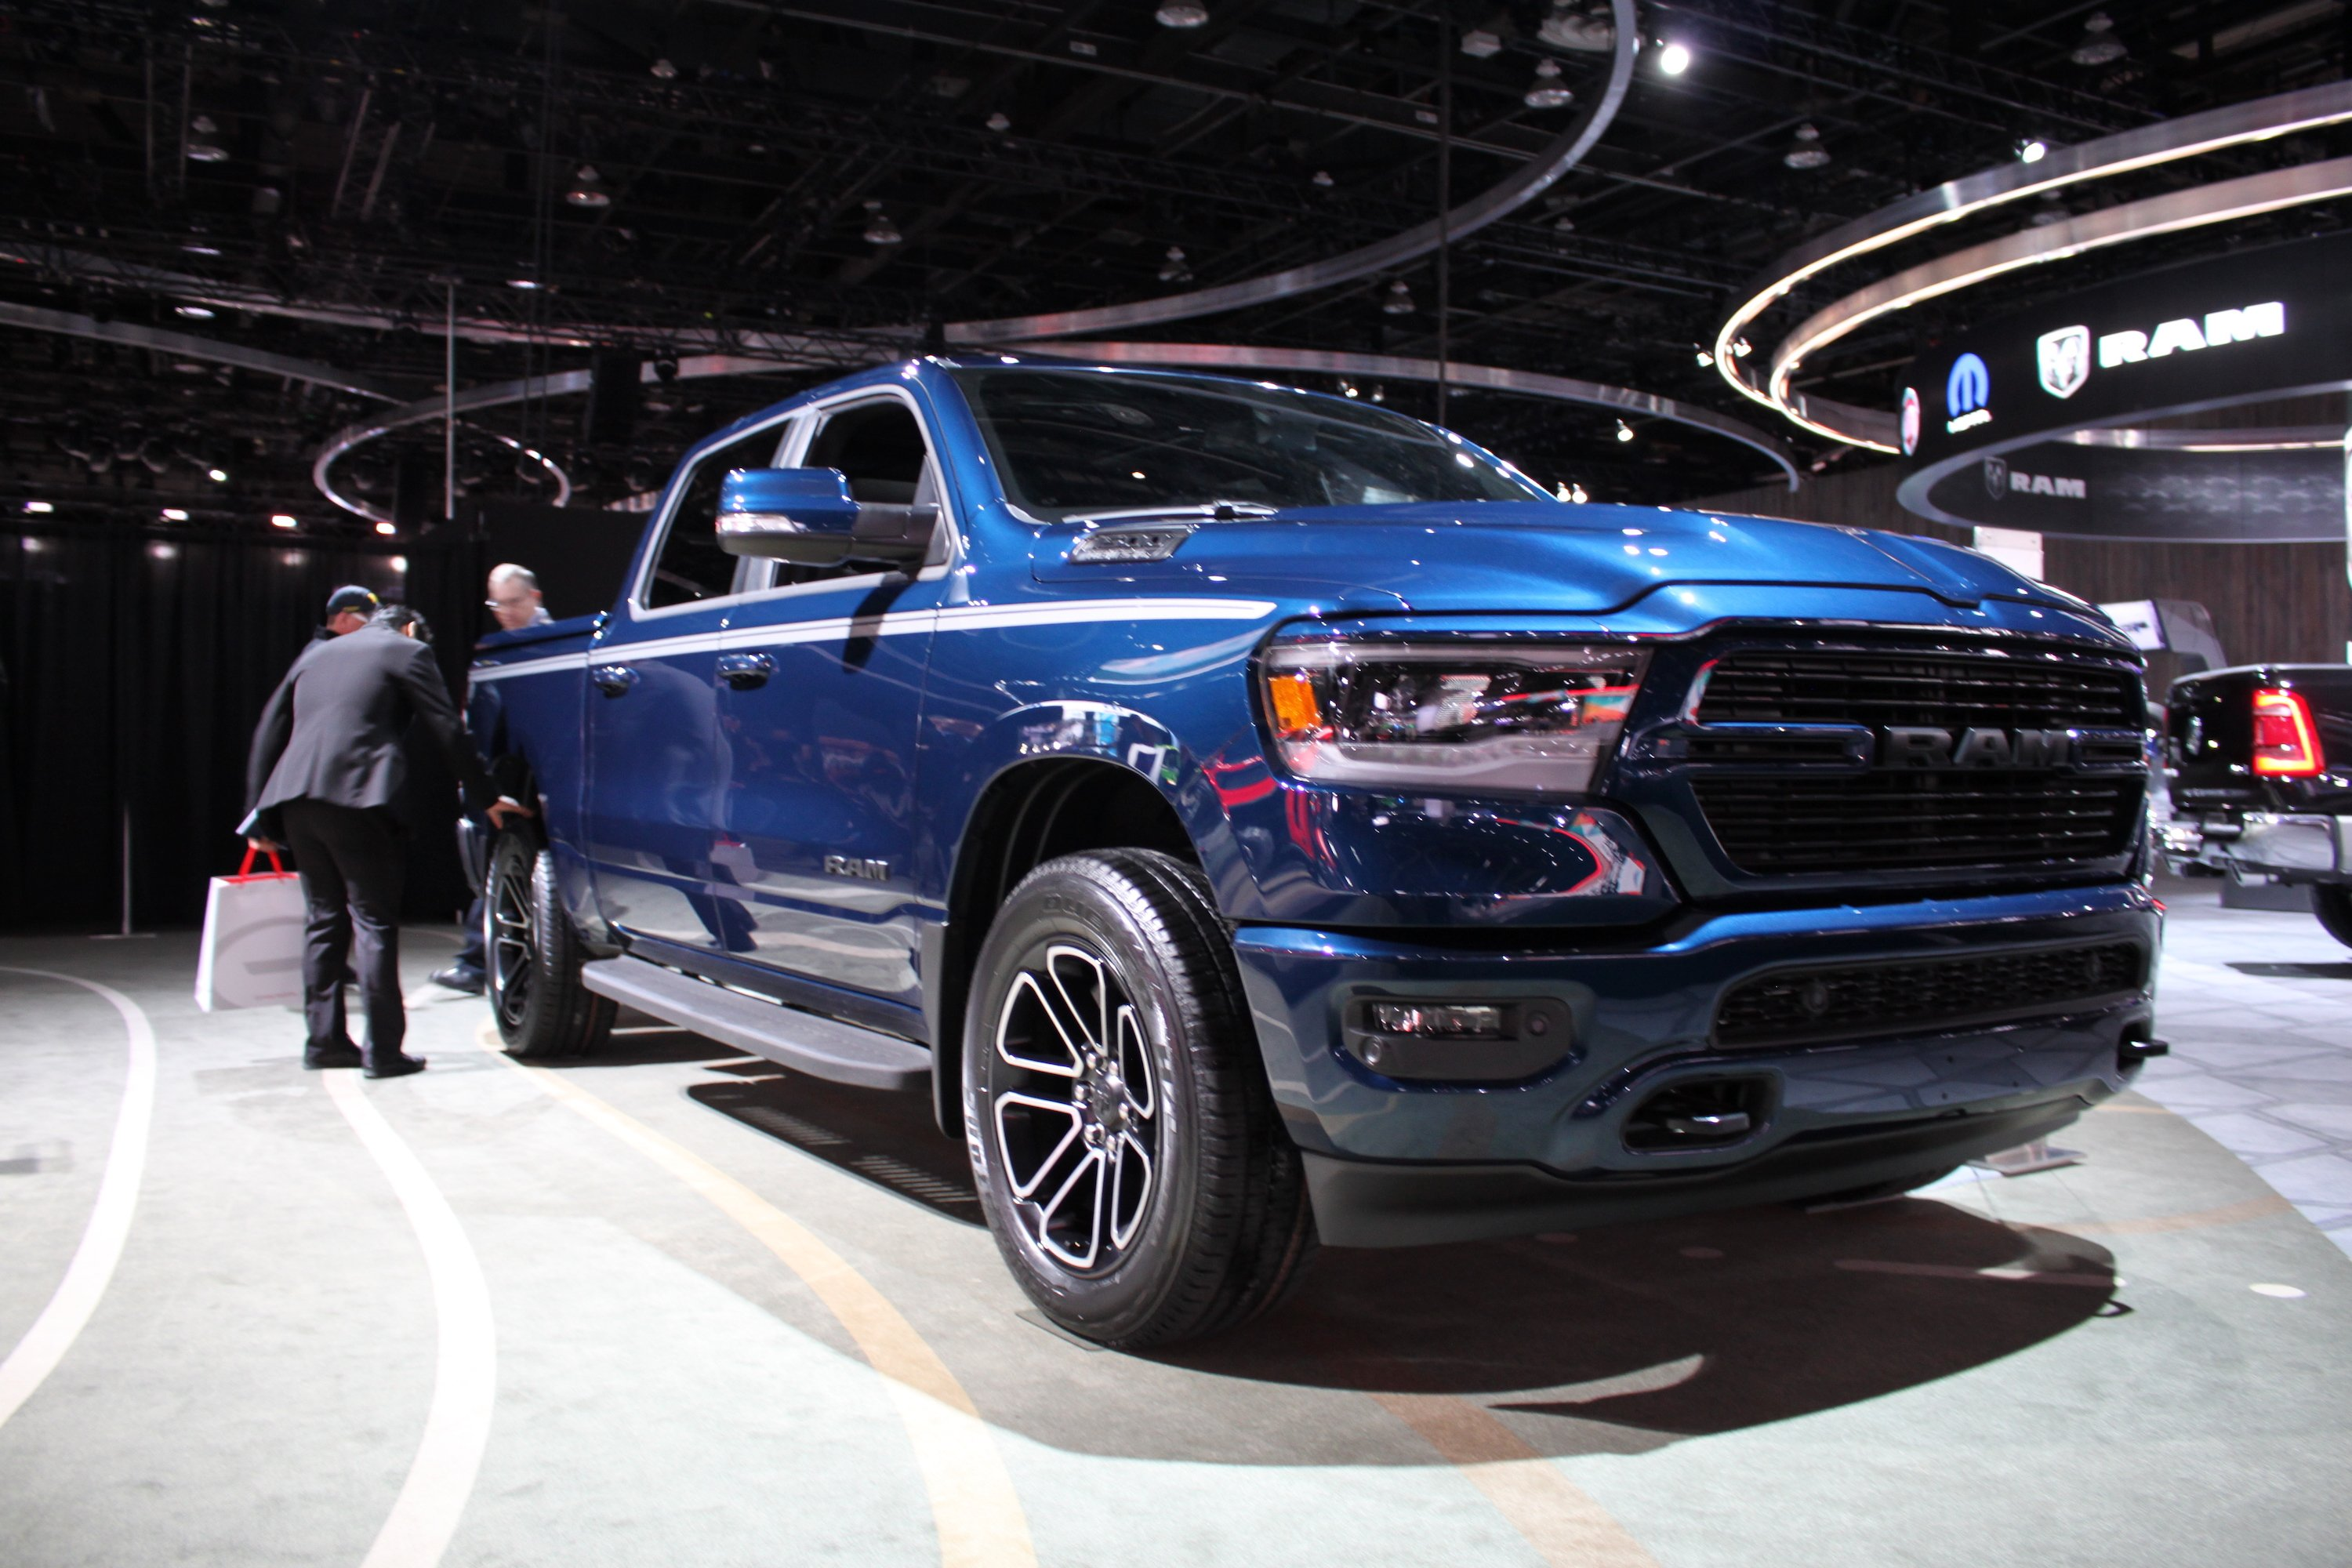 2019 Ram 1500 Loses 225 Pounds, Gains Hybrid Tech » AutoGuide.com News